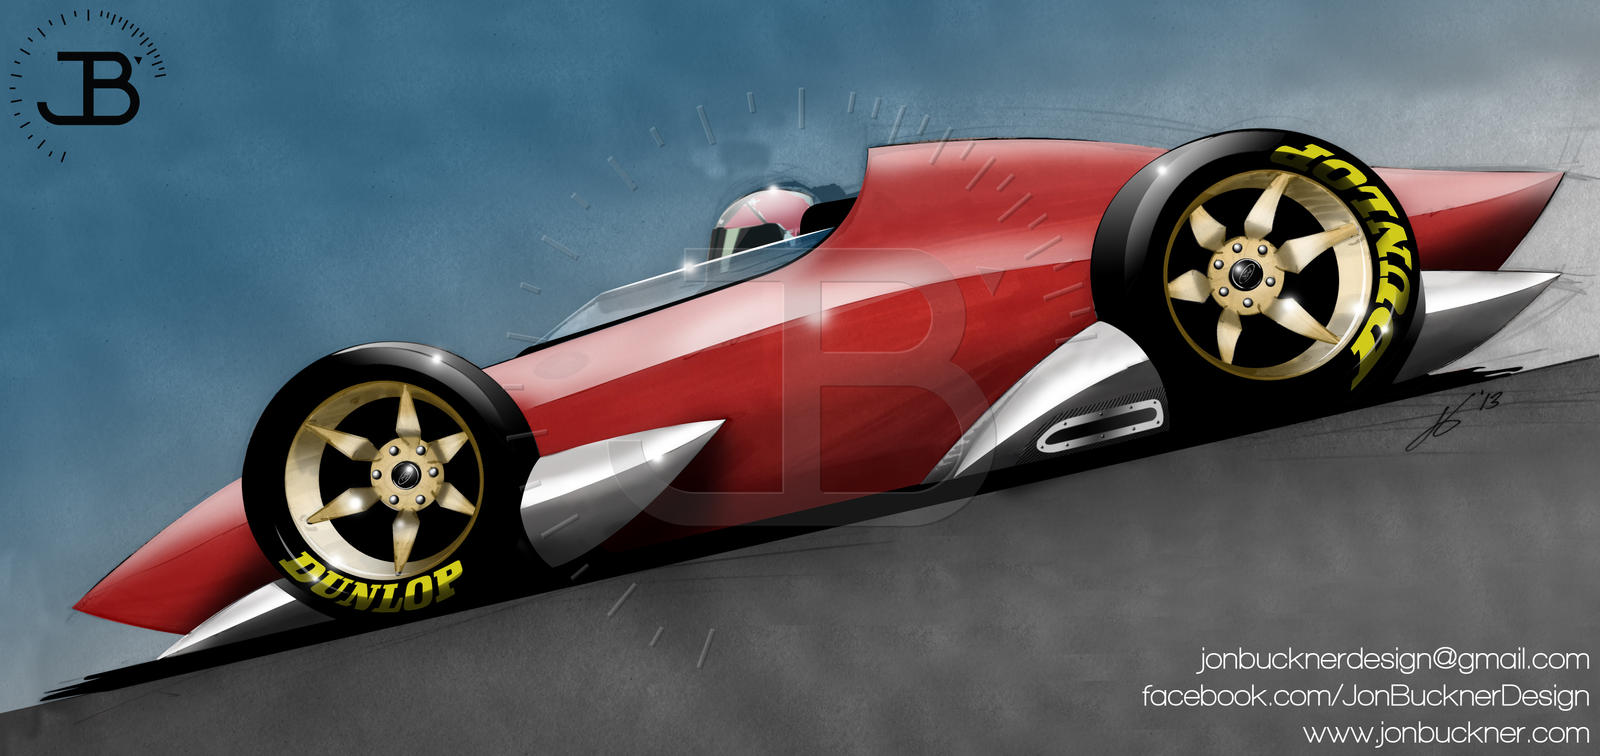 Ford Open Wheel Concept Car by JonBuckner